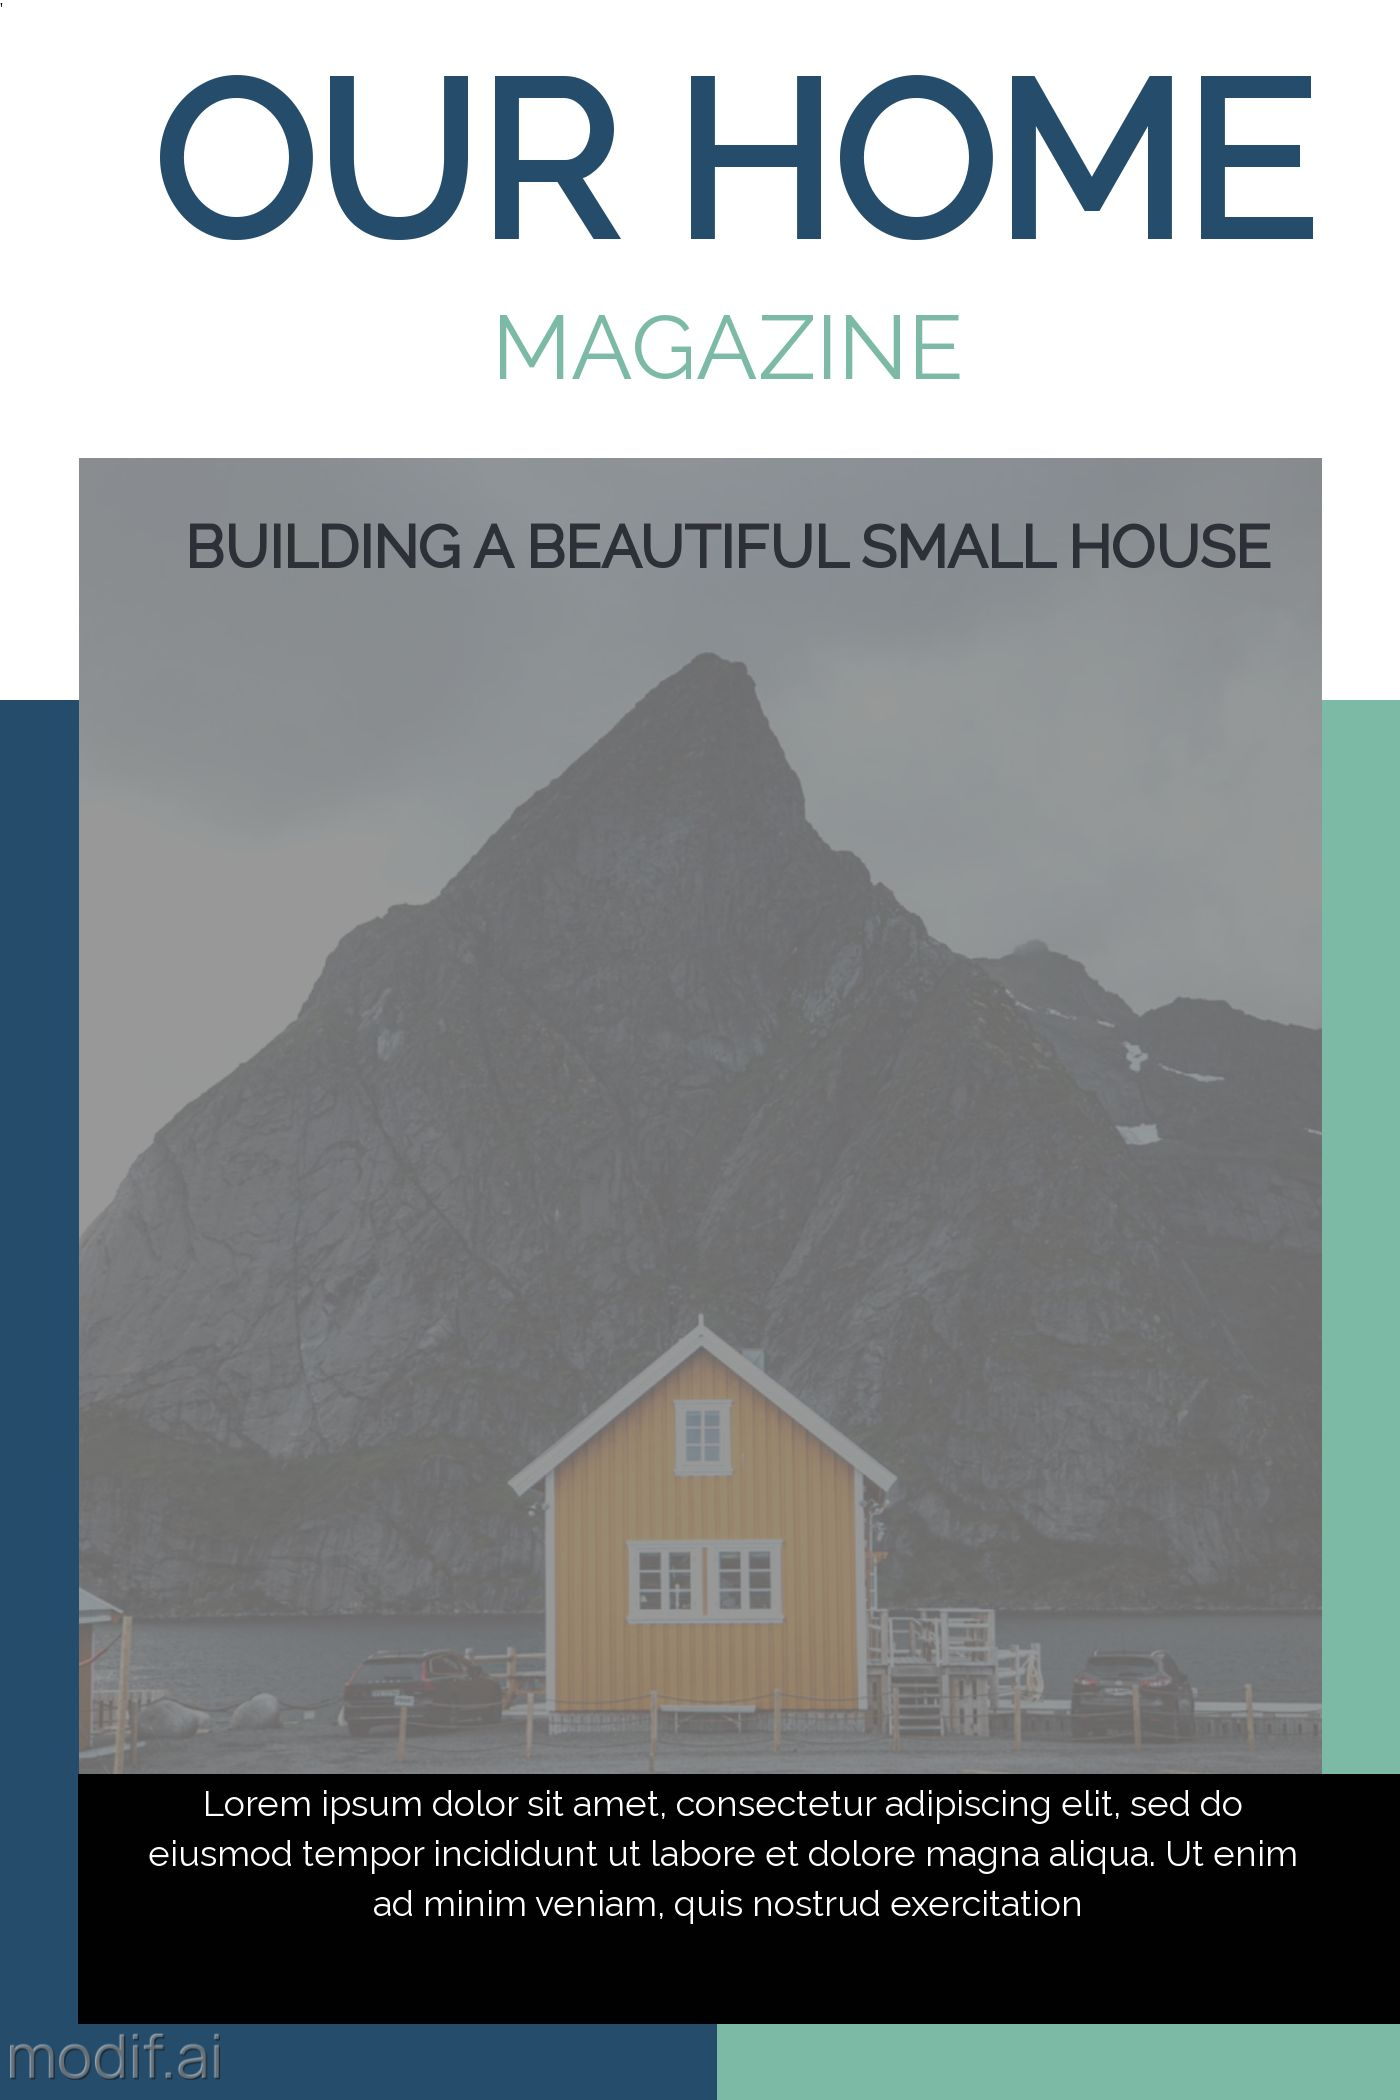 Our Home Magazine Cover Template